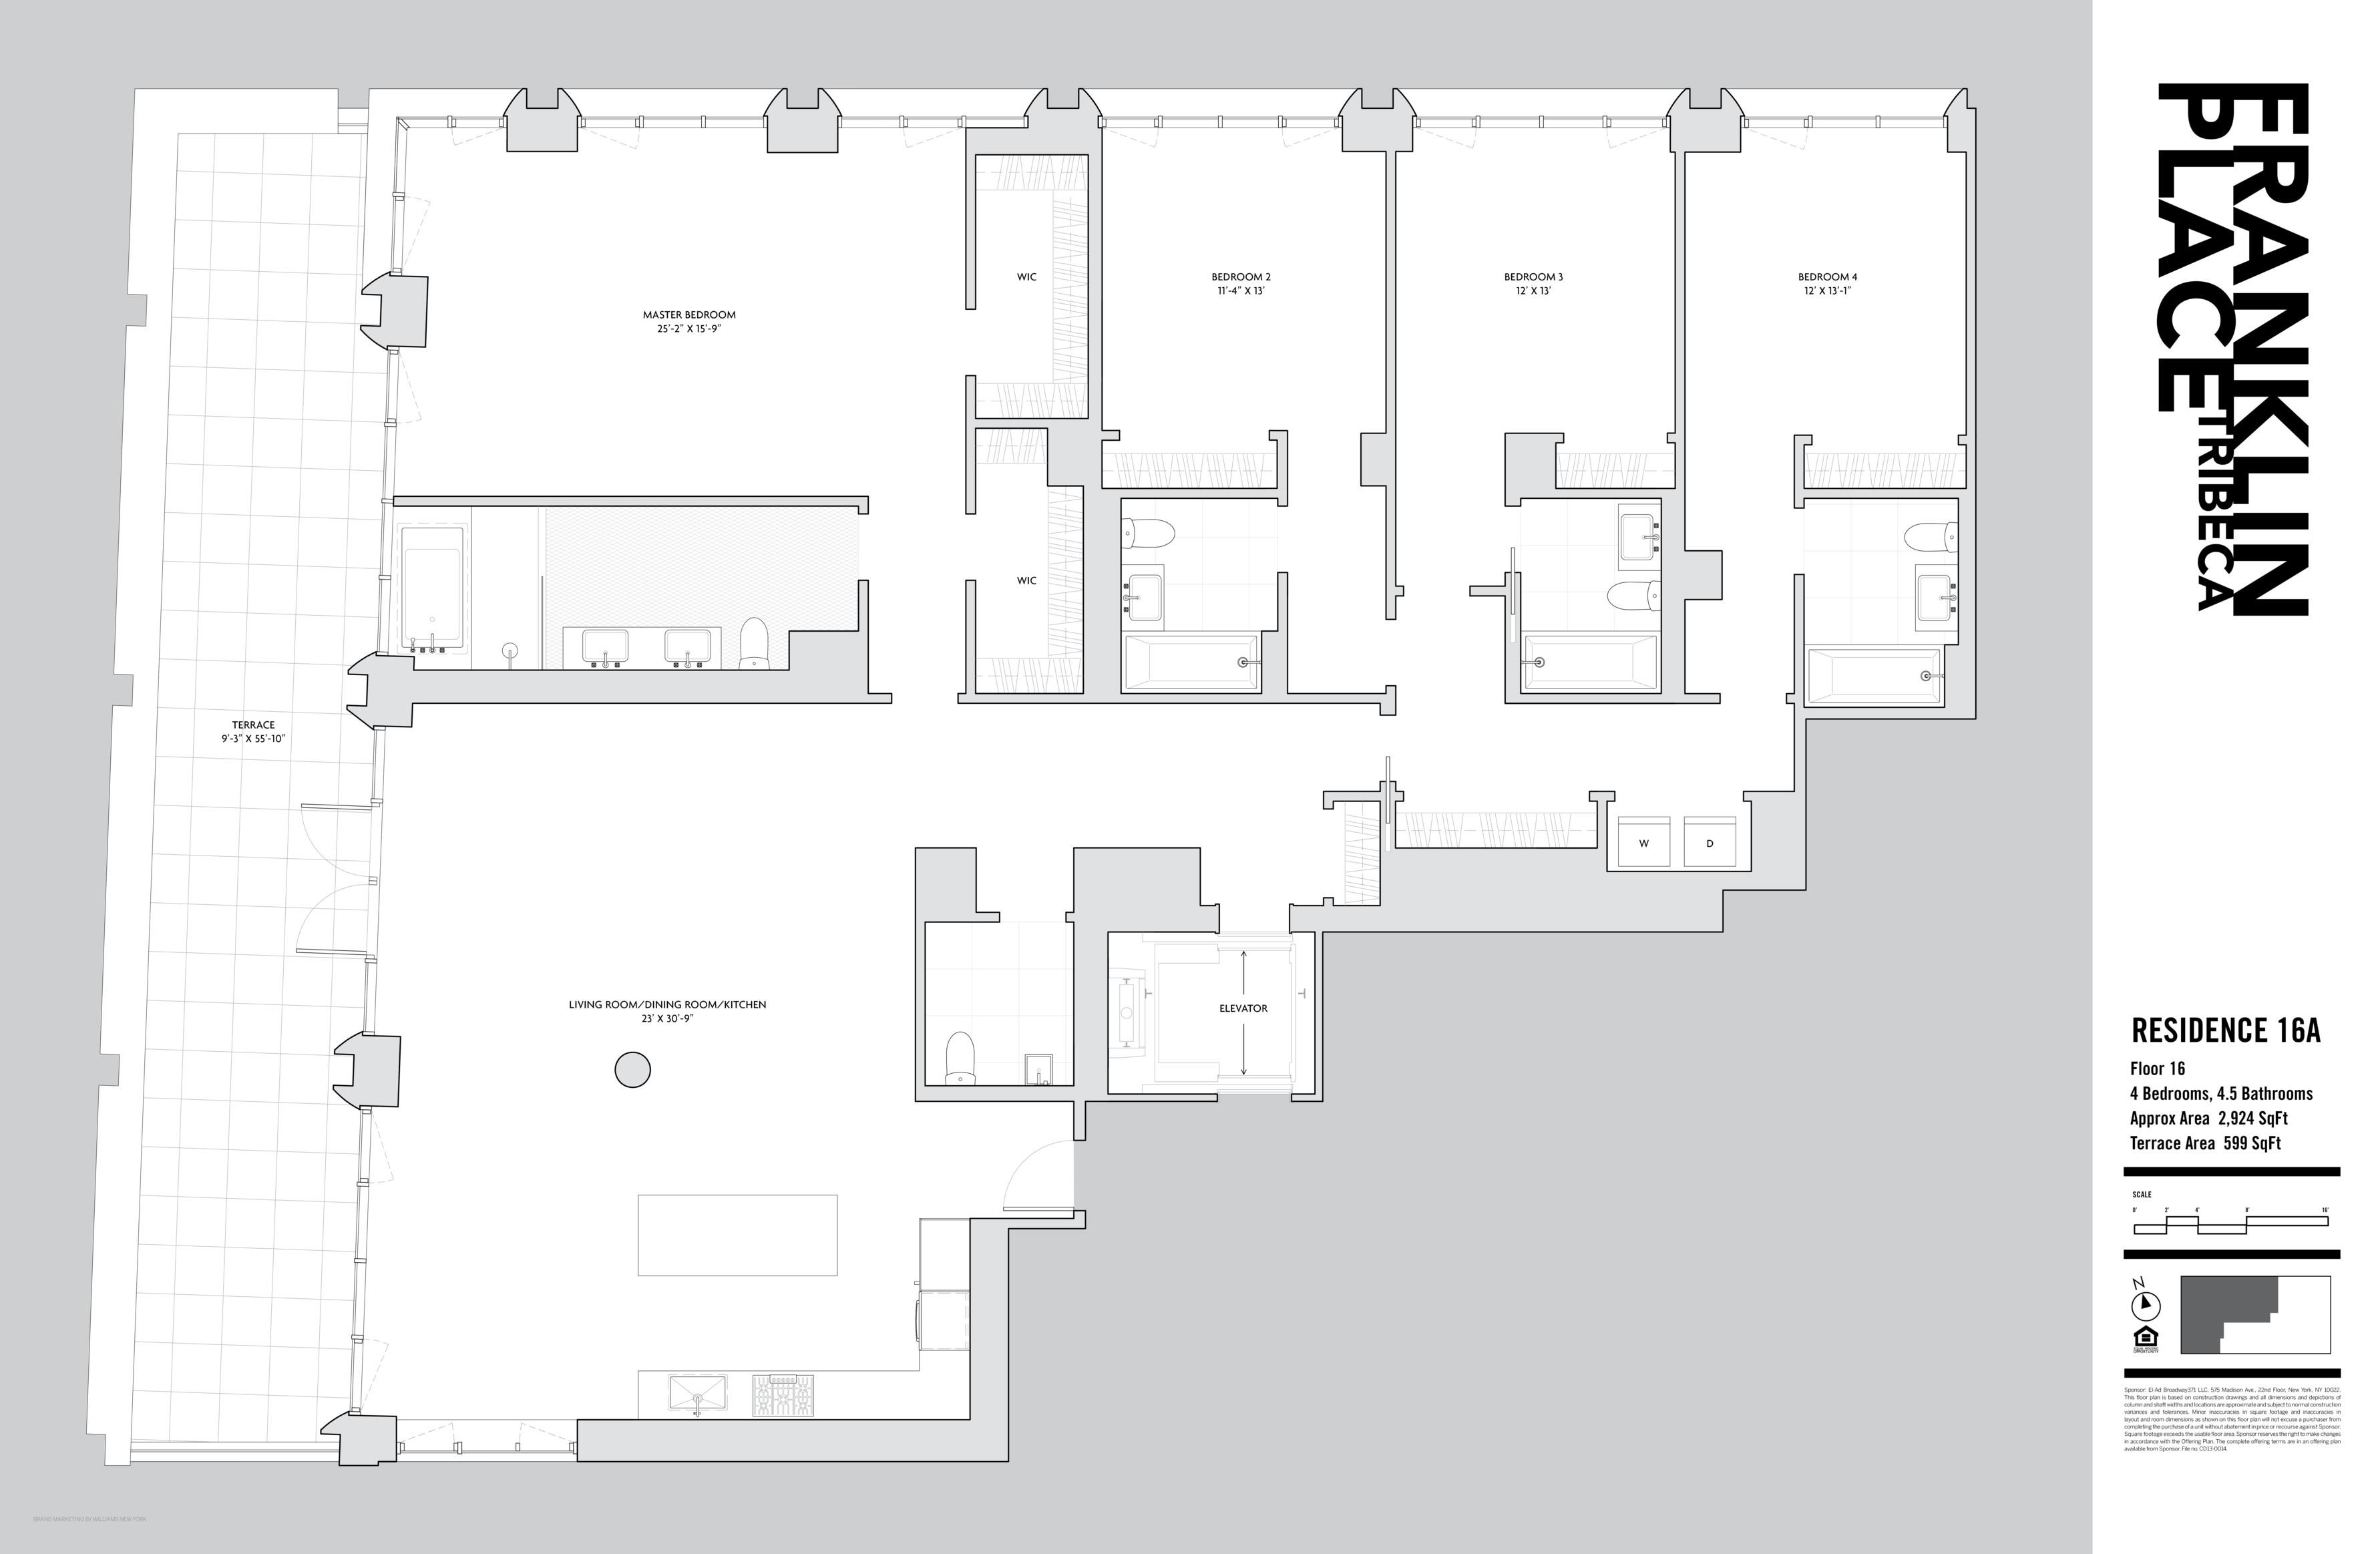 Floor plan of Franklin Place, 5 Franklin Pl, 16A - TriBeCa, New York